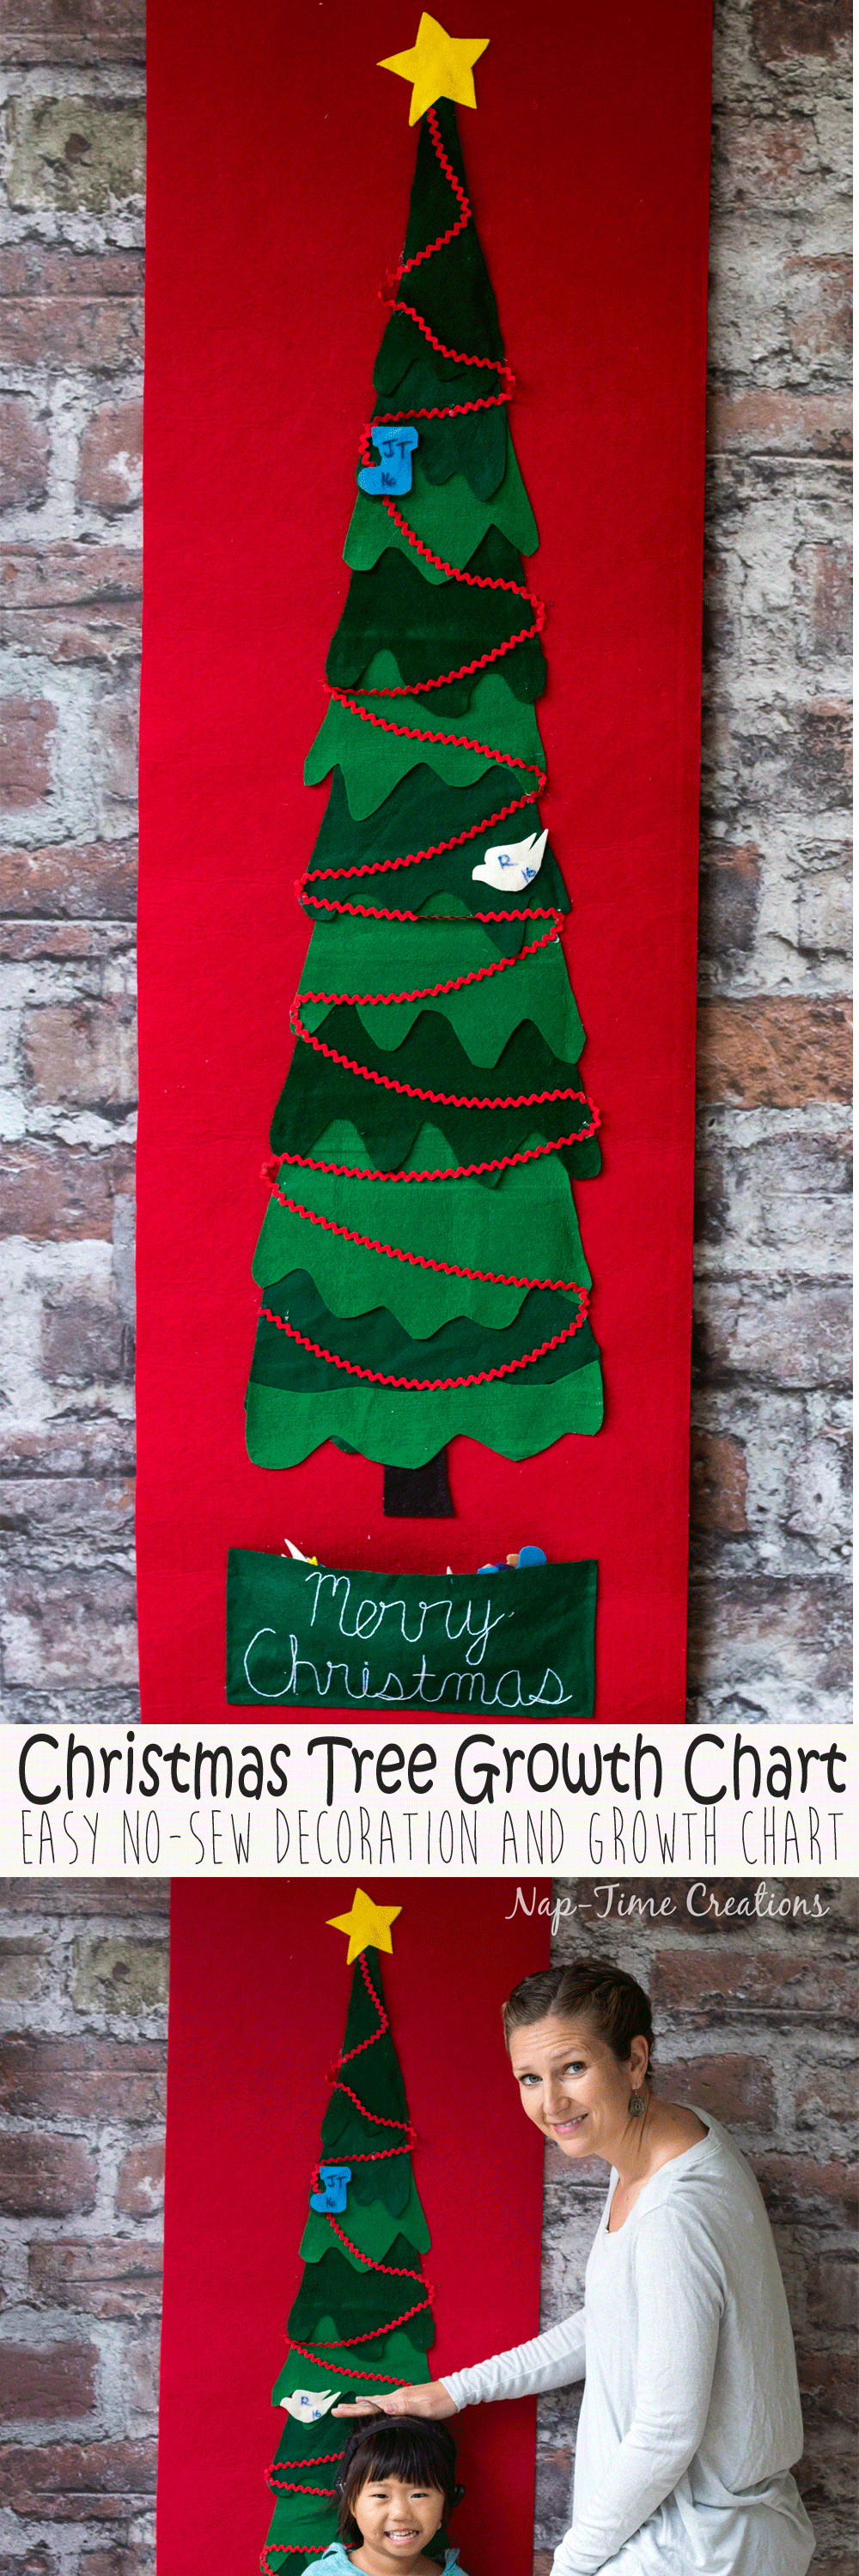 Felt Christmas Tree Growth Chart Easy No Sew project with template from Nap-Time Creations